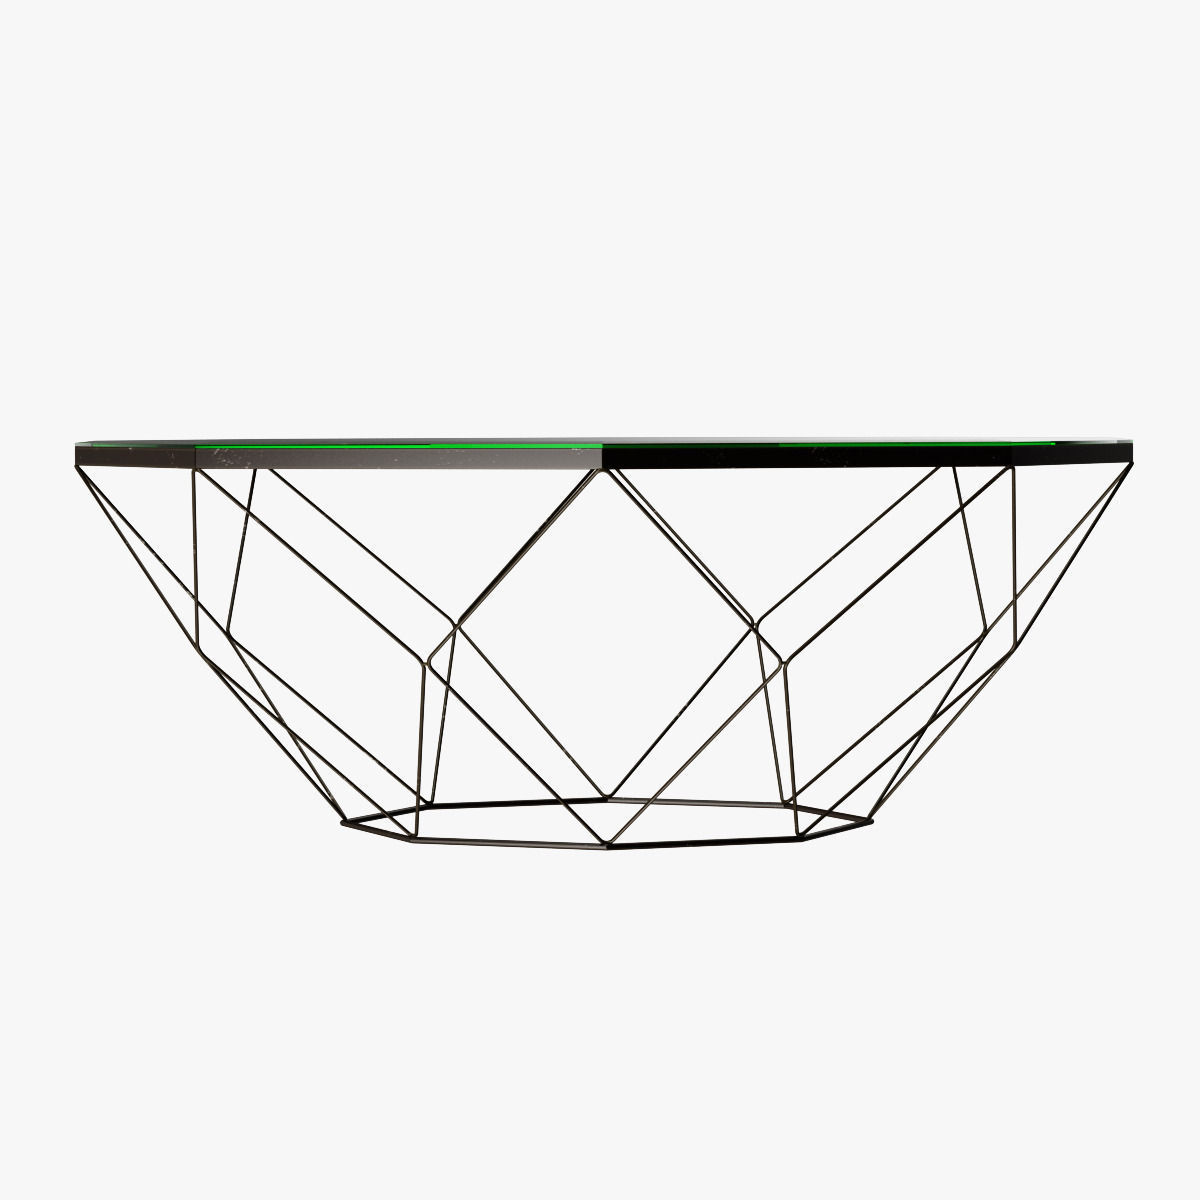 Film Reel 4 furthermore Geometric Antique Brass Coffee Table With Glass Top besides Geometric Antique Brass Coffee Table With Glass Top additionally Wildcats 2 also Open Design Water Heater And Electricity System Odwhes. on 3d animal iphone 5 cases